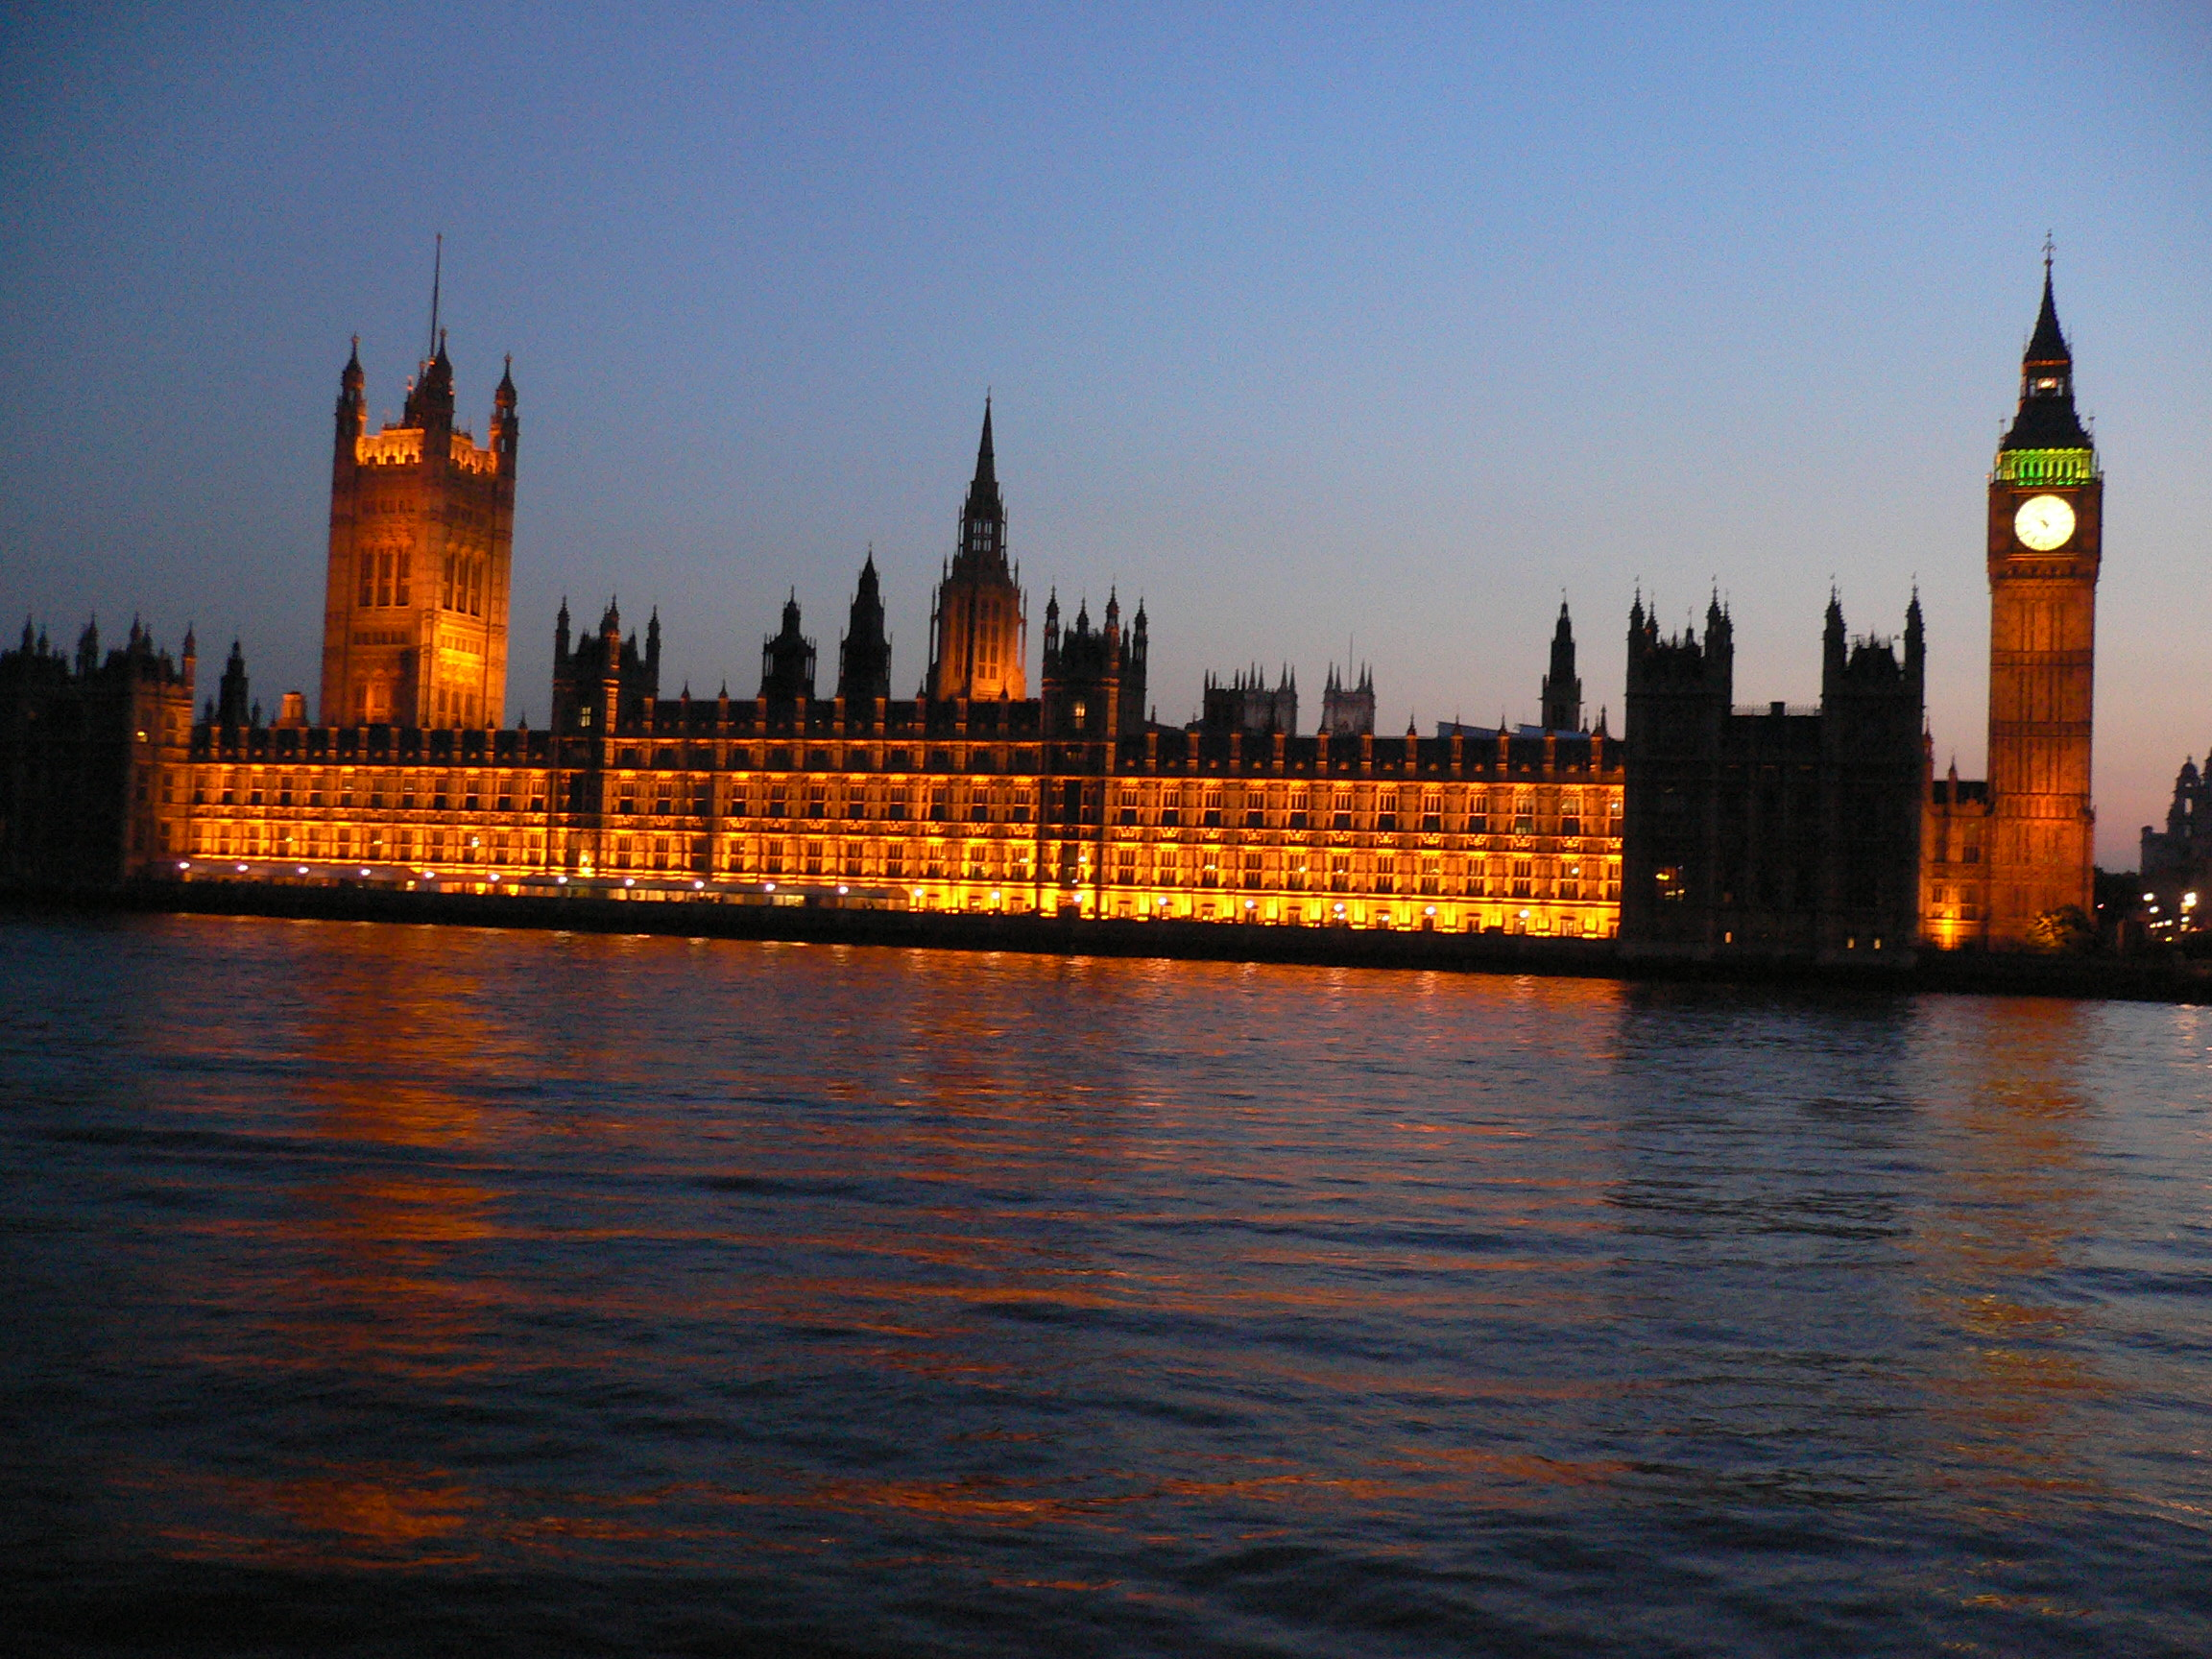 Westminster by Aude-la-randonneuse